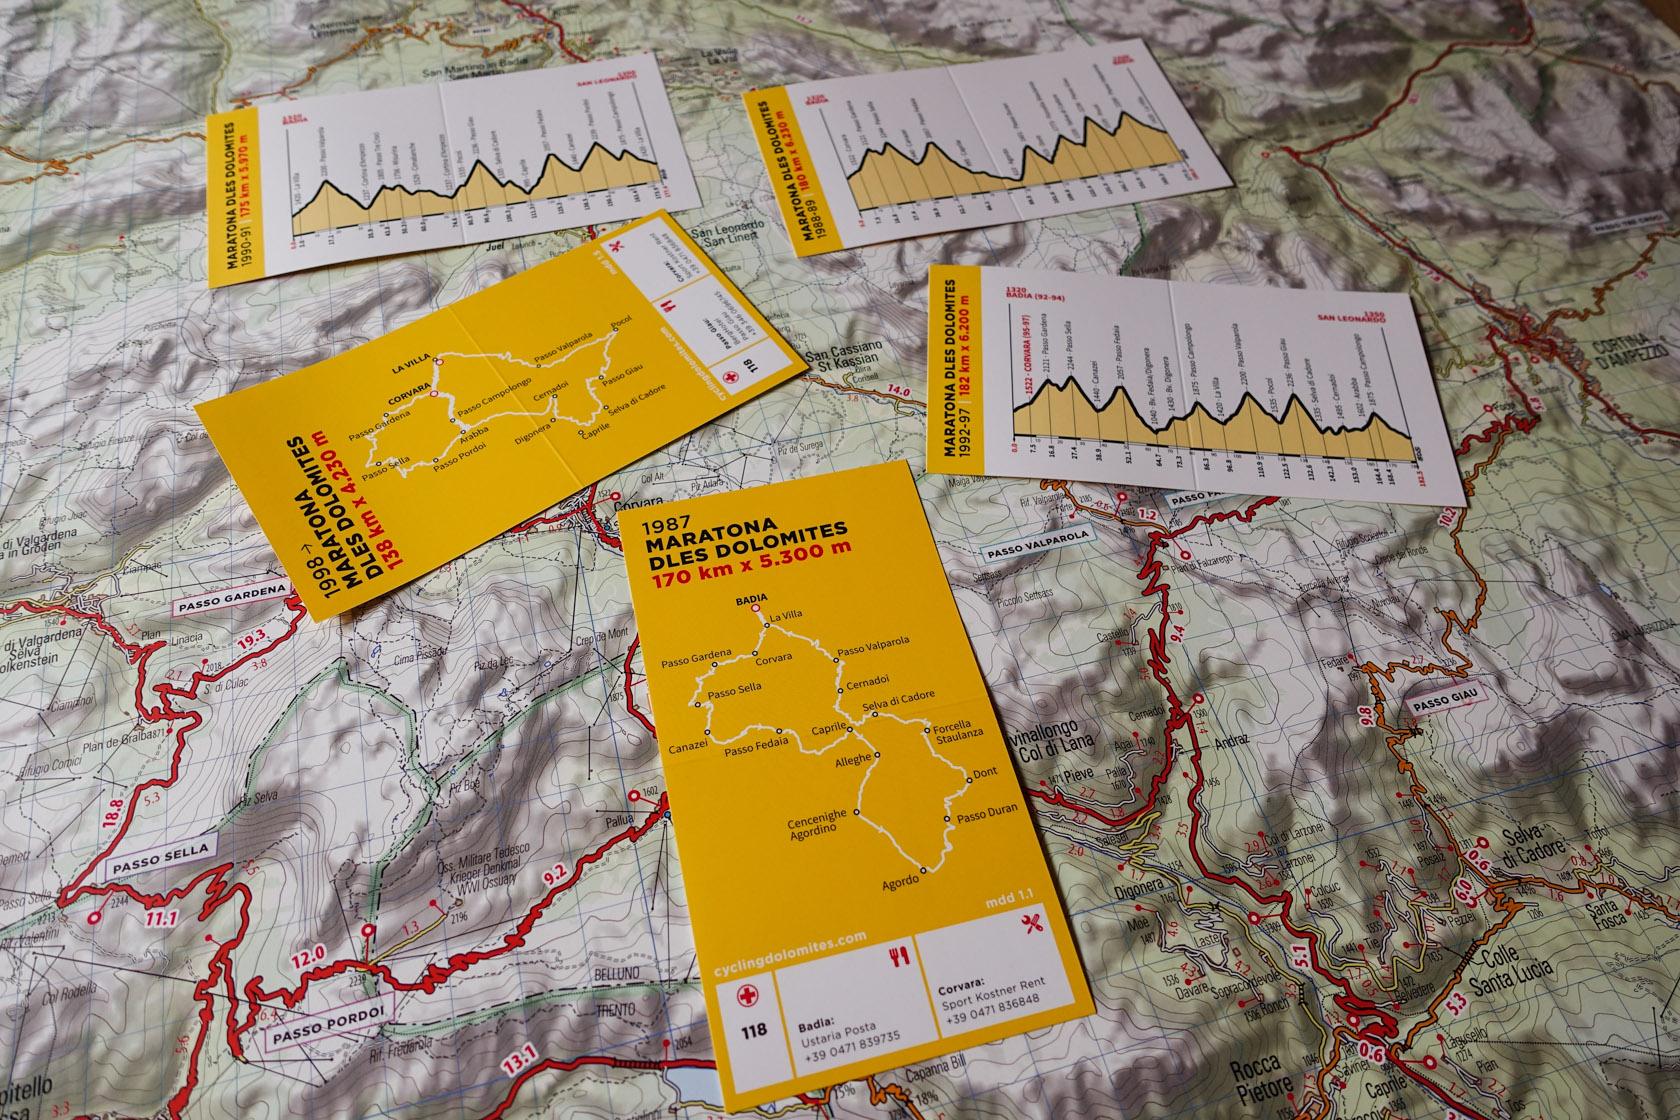 Dolomites cycling map on